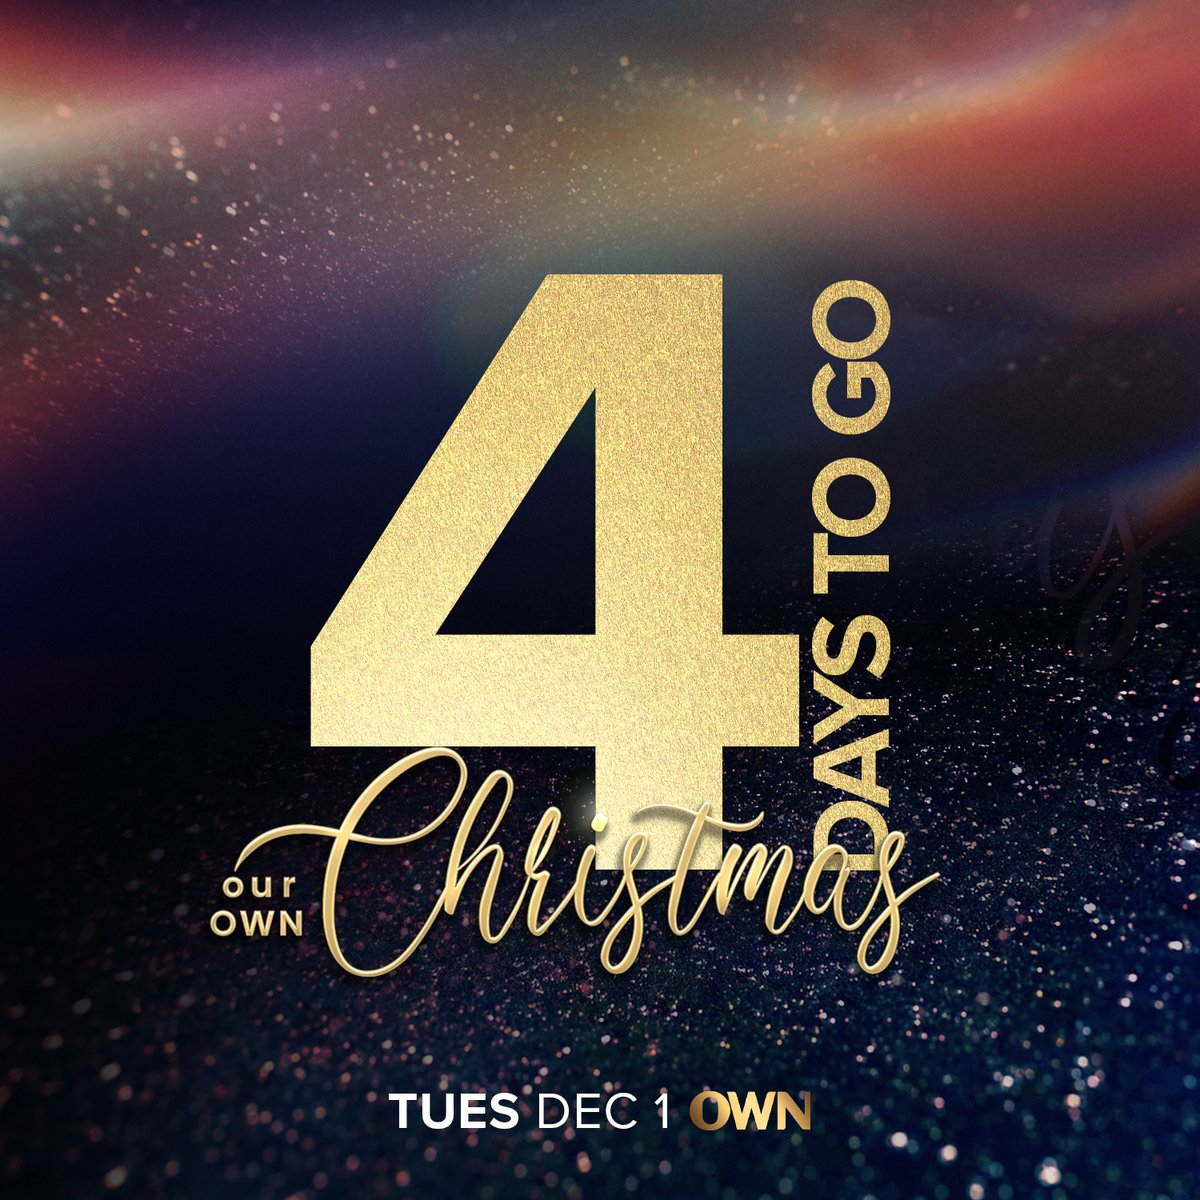 Get. Ready. 4 days y'all! Our OWN Christmas Gospel Special is coming to you SOON!! https://t.co/H7jGHUuFQq